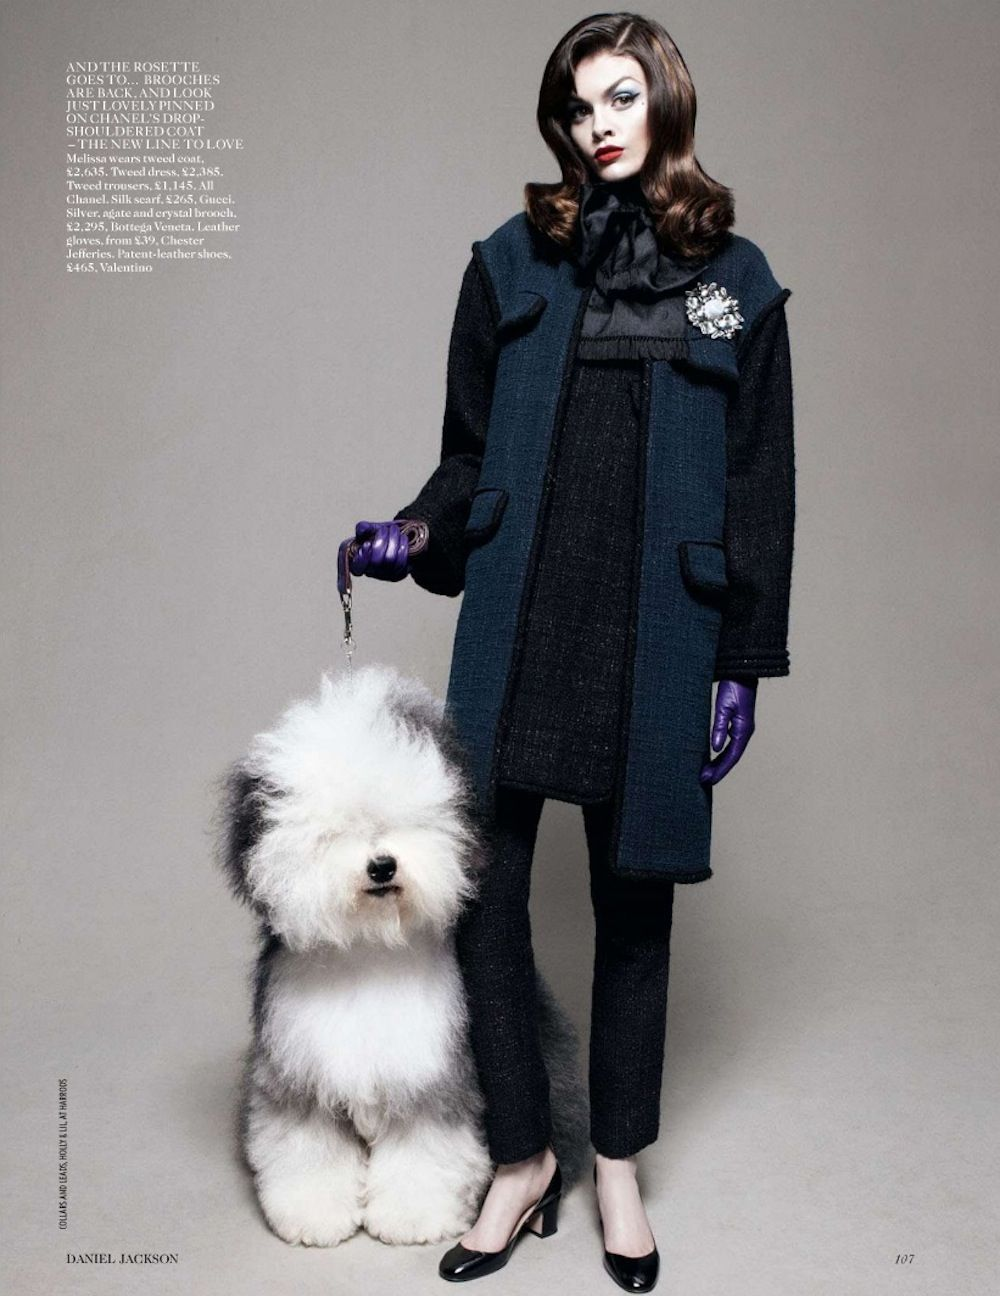 d6eba5e0c Best in Show | UK Vogue, August 2012 | eye candy | Pet fashion ...